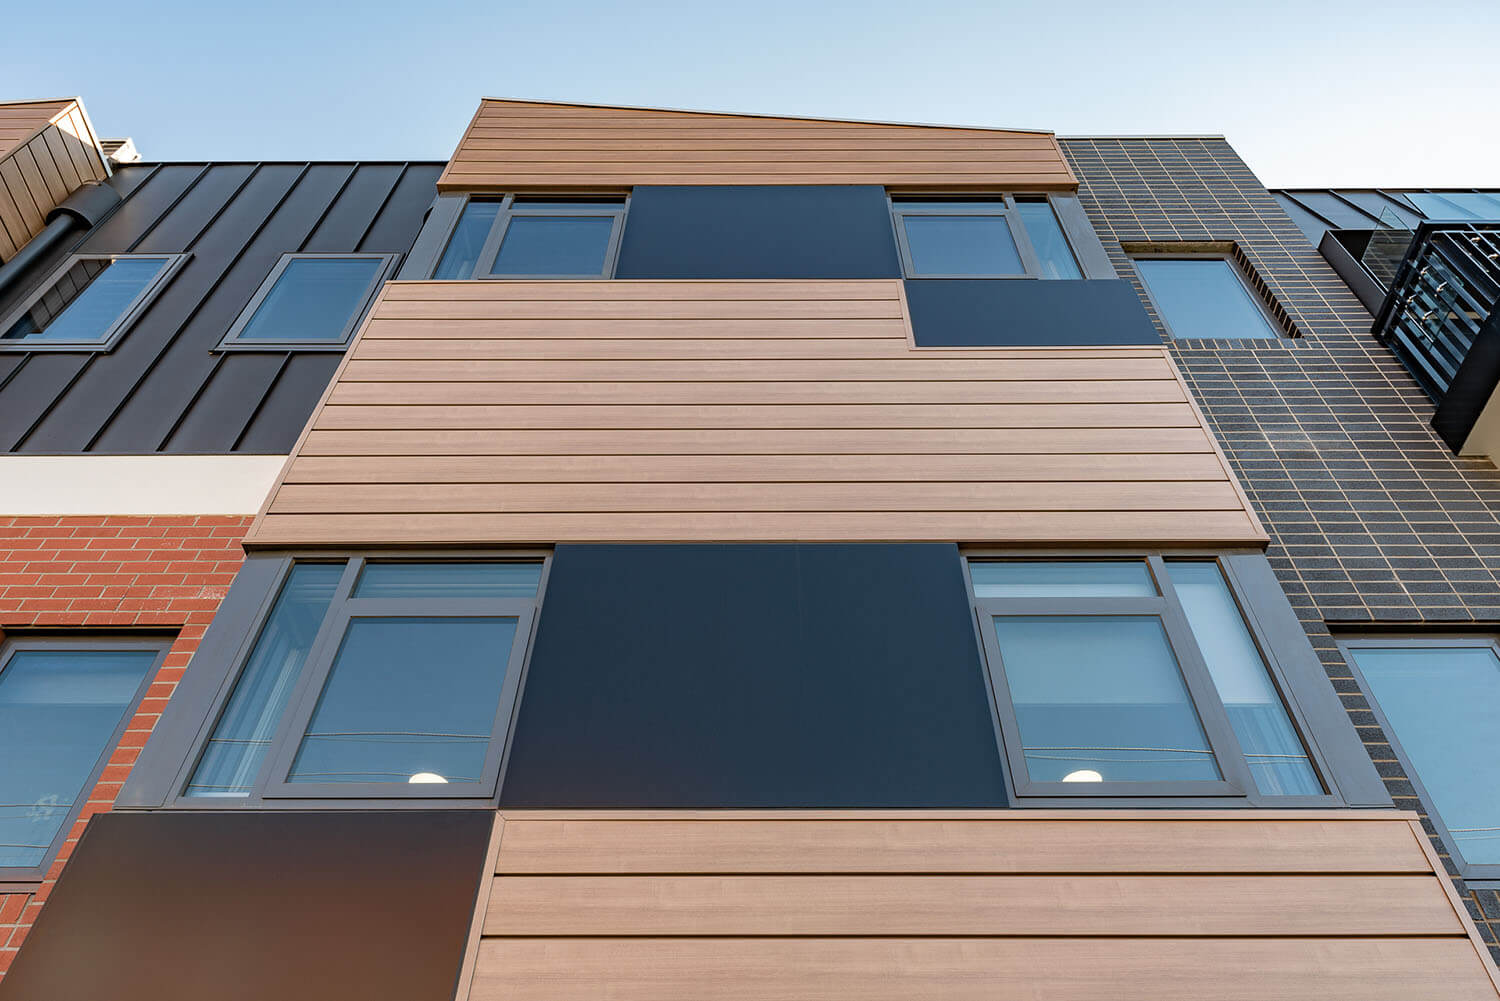 TimberLookExpressPanelCladding_Mercy3.jpg